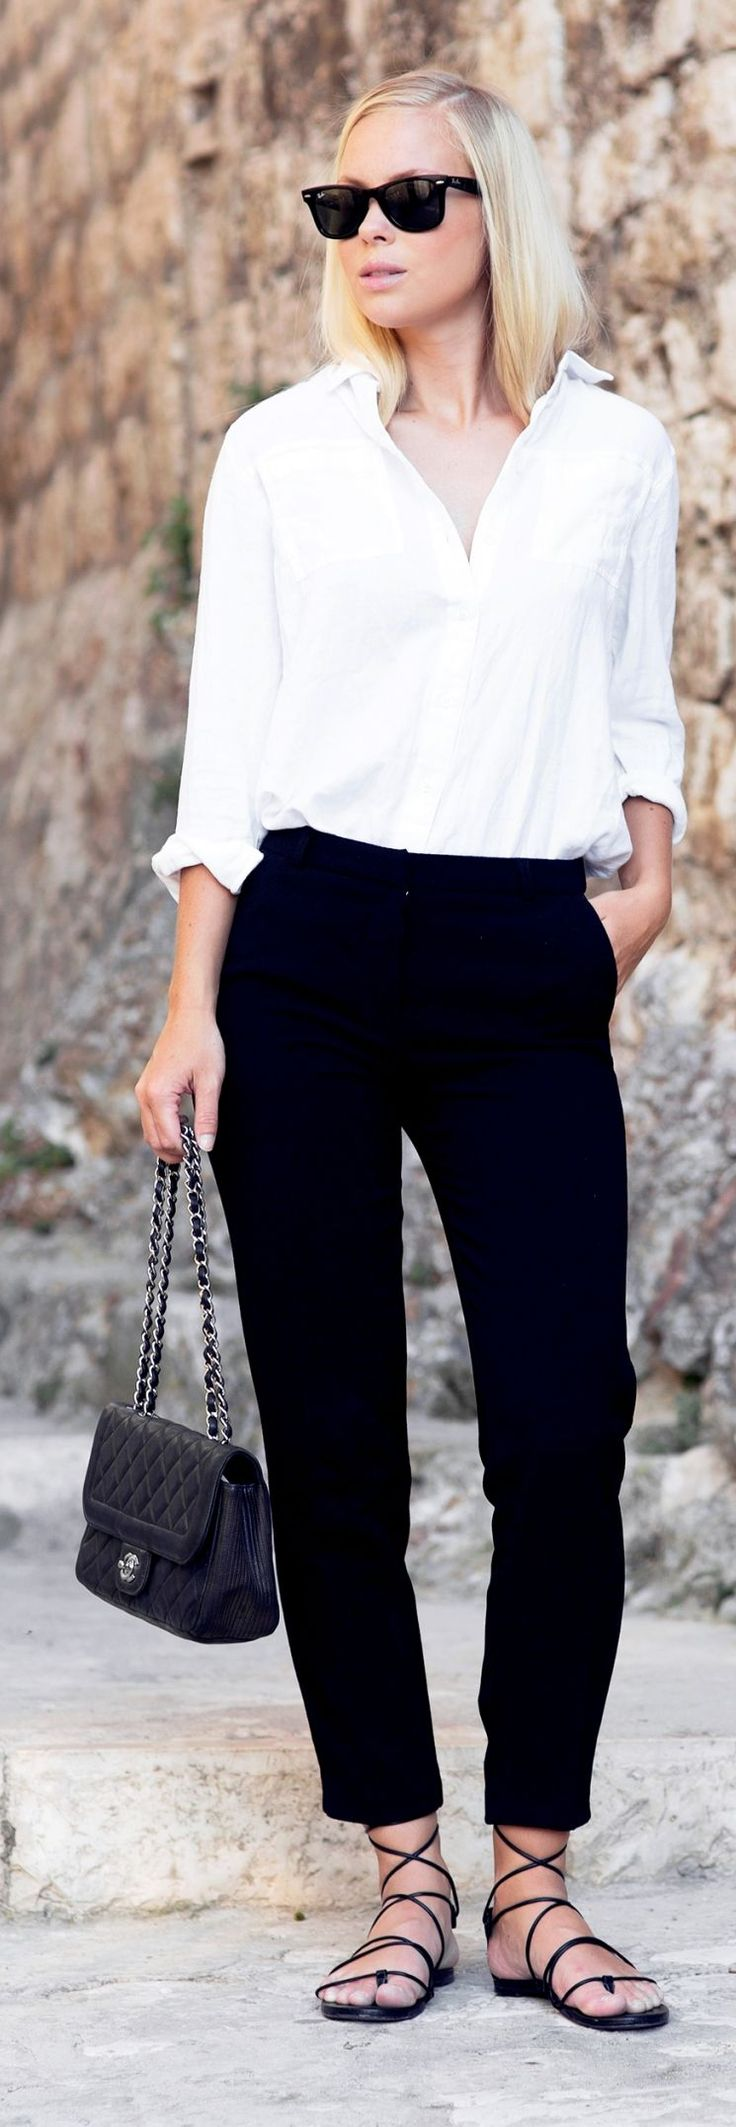 Black And White Vacay Chic Outfit Idea by Victoria Tornegren